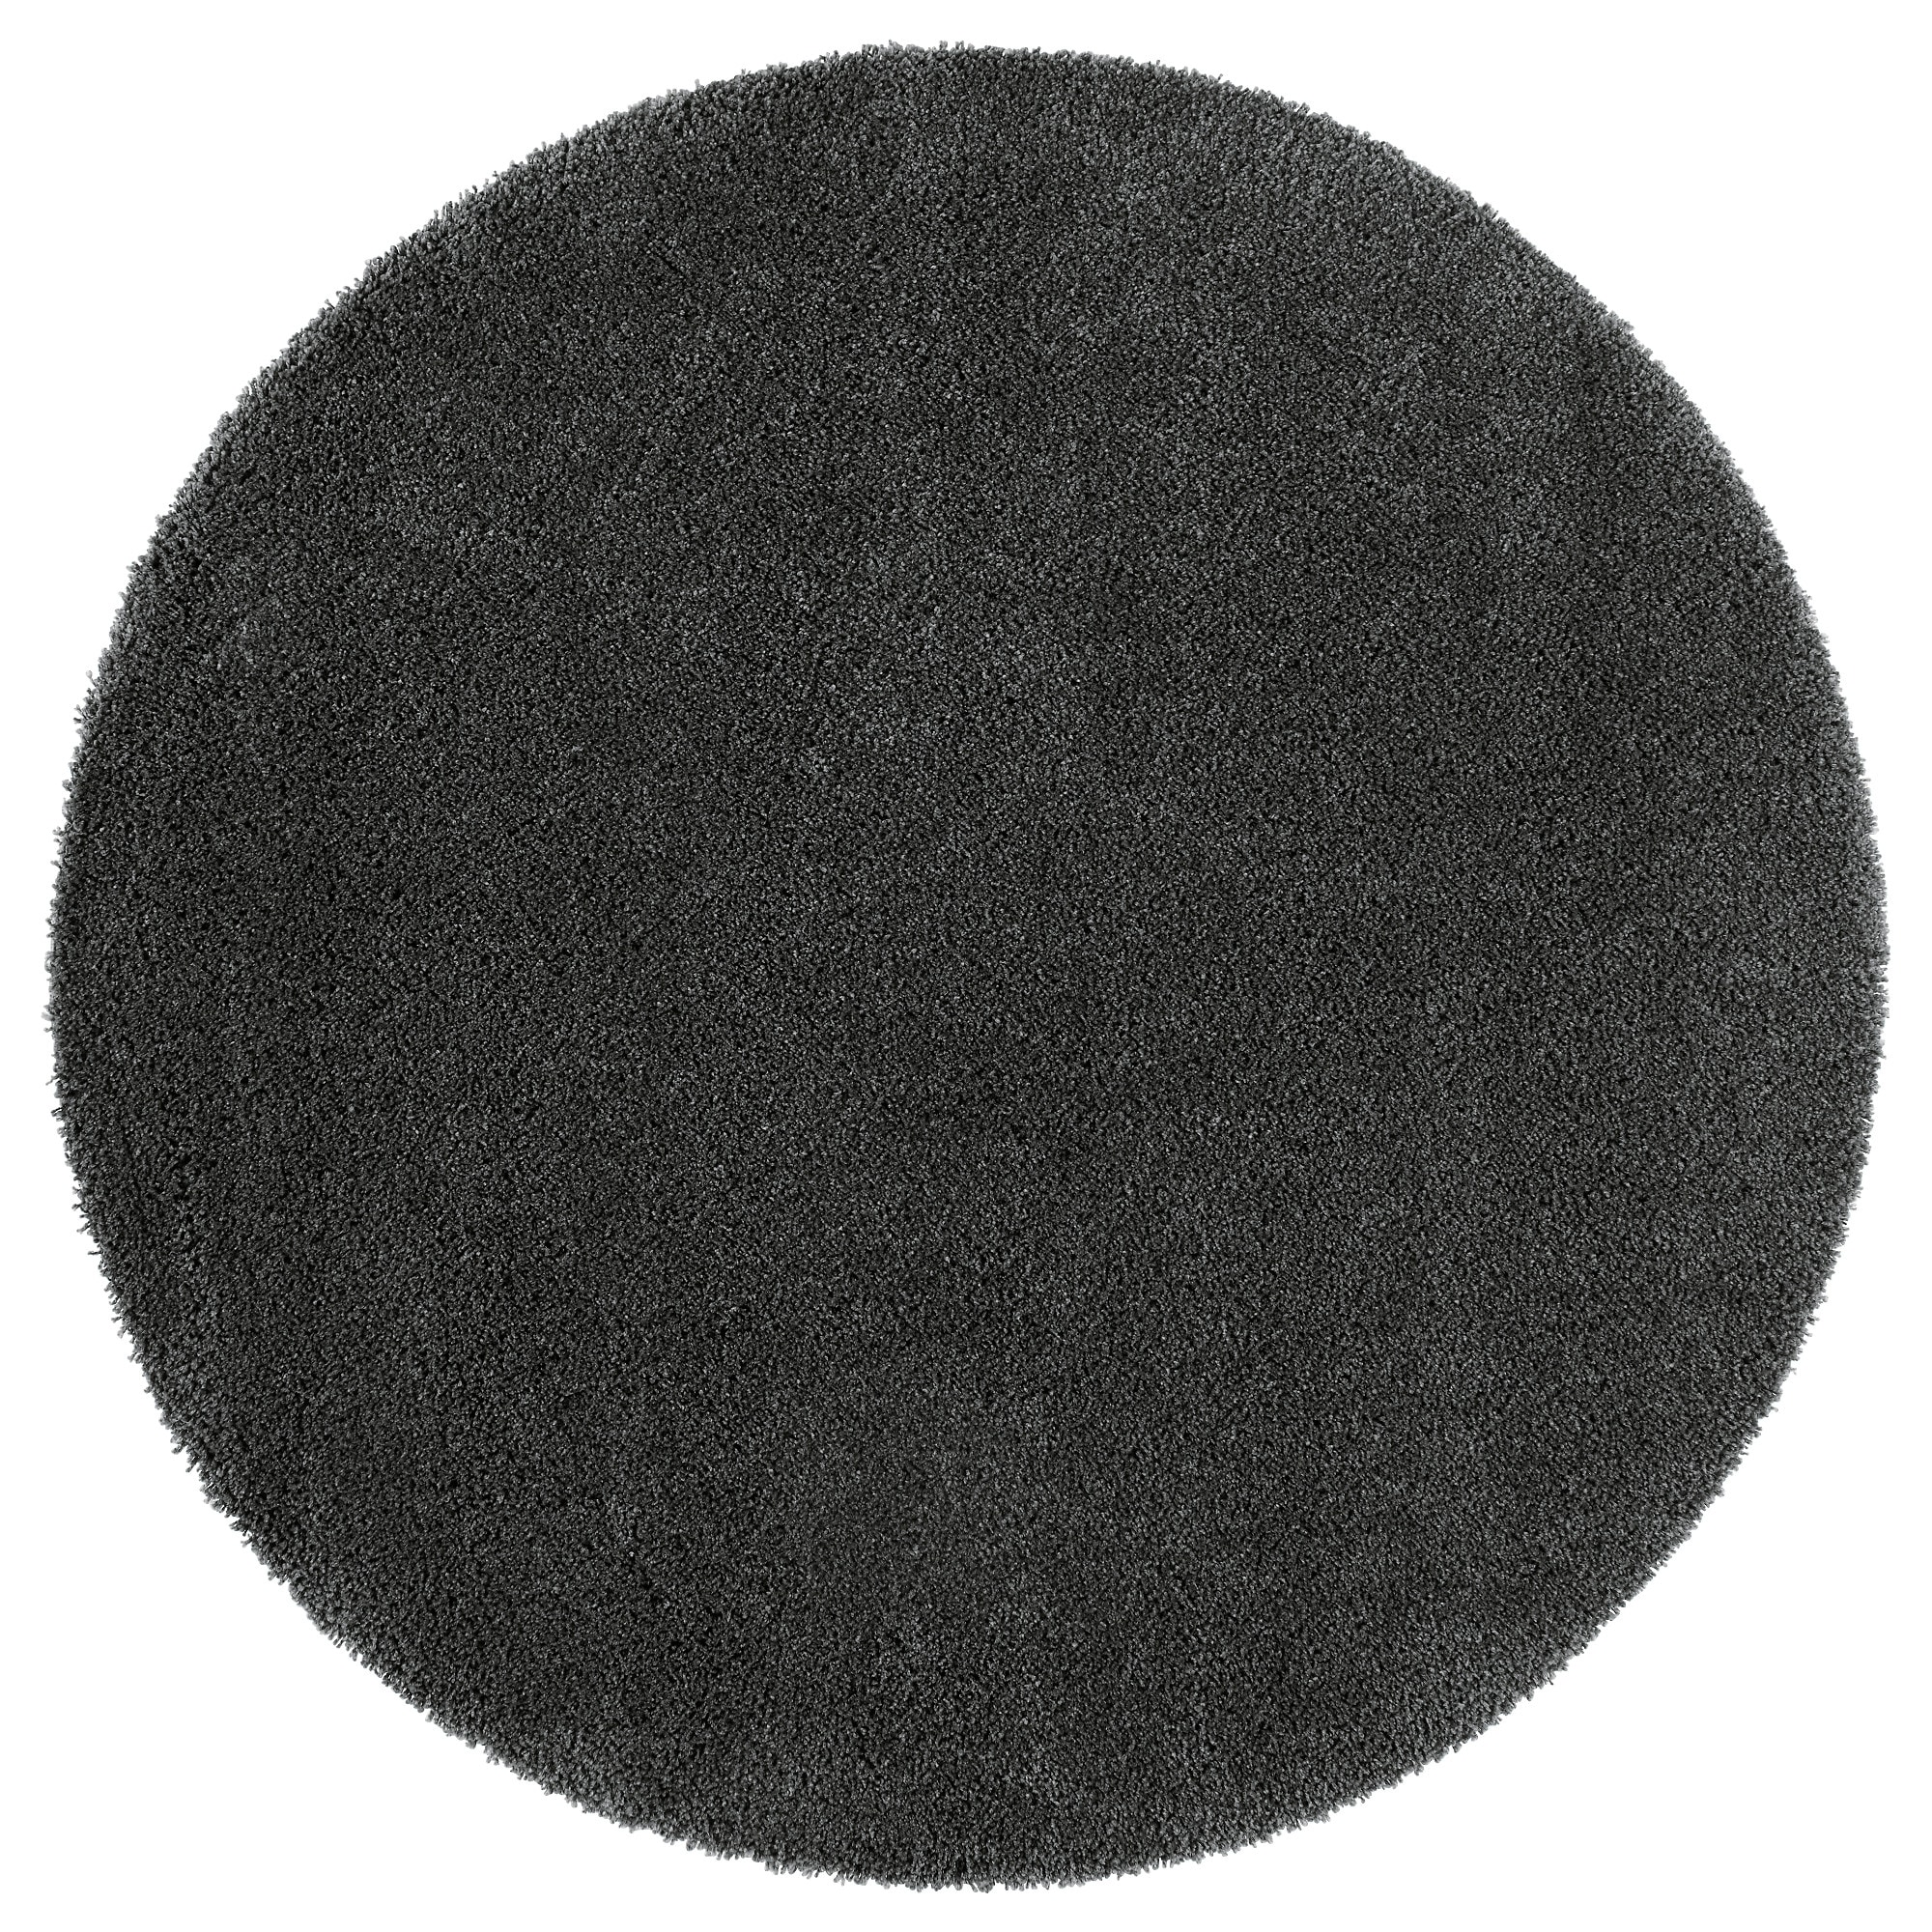 Dum Rug, High Pile, Dark Gray Diameter: 4 ' 3